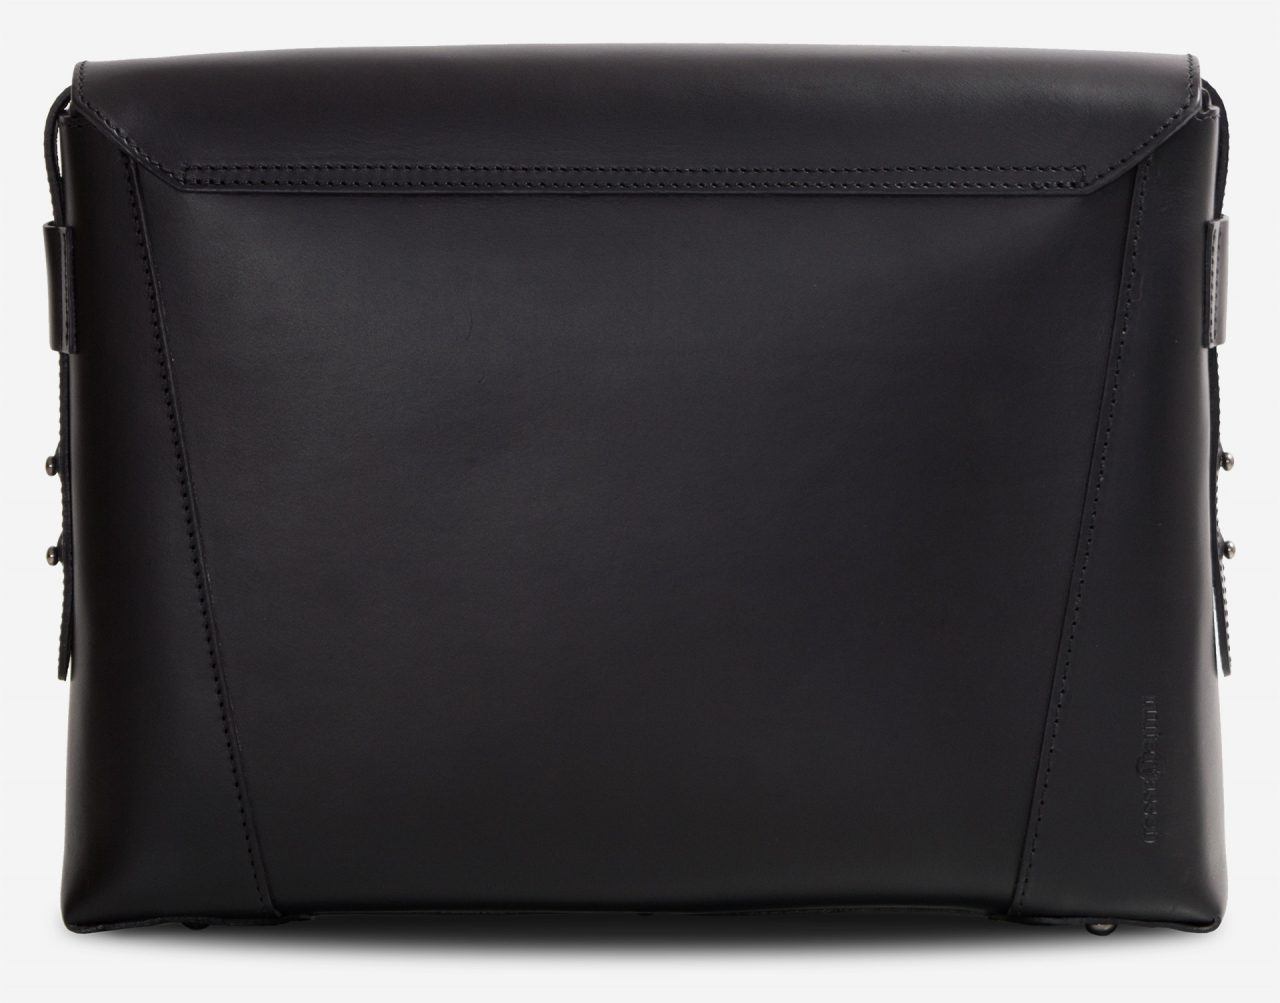 Back view of the slim vegetable-tanned black leather briefcase bag.